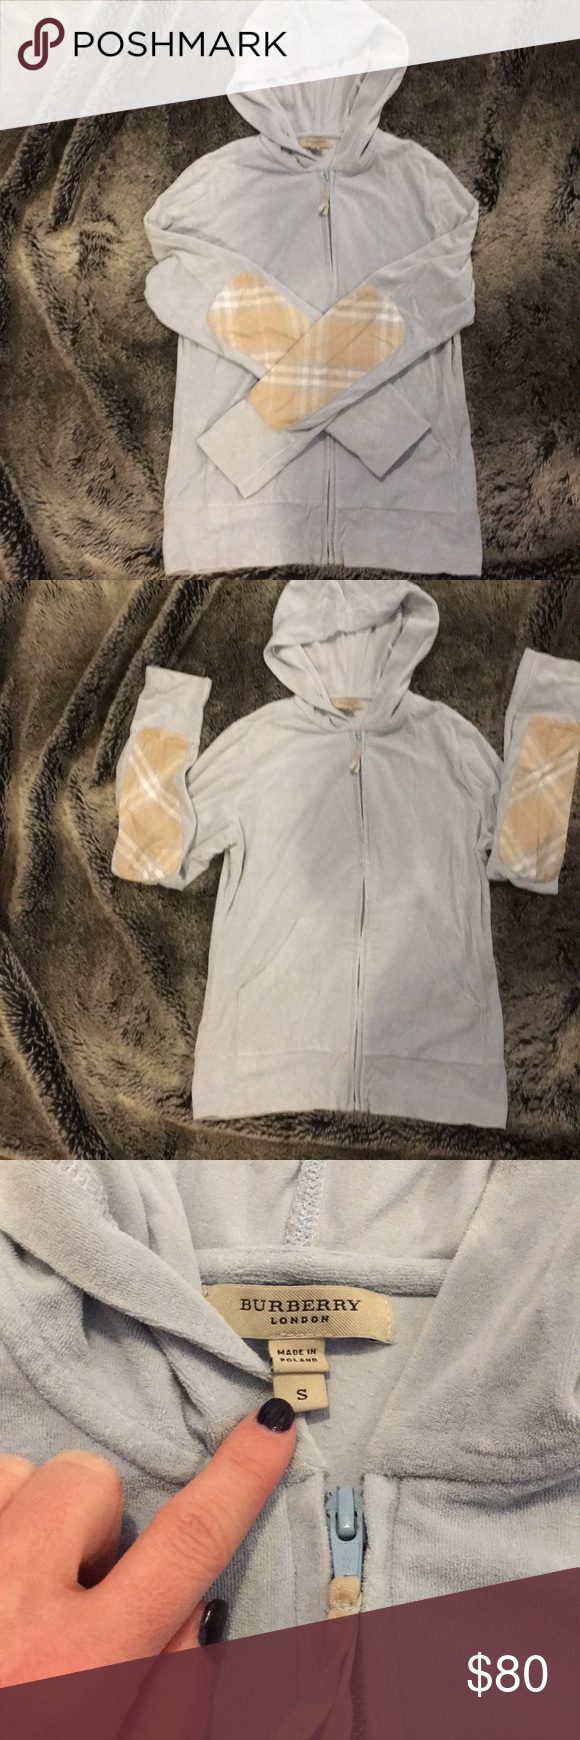 Women s Burberry terry cloth zip up hoodie Burberry women s terry cloth zip  up hoodie with plaid elbow patches. Size small. Gently loved! 849ac4df7